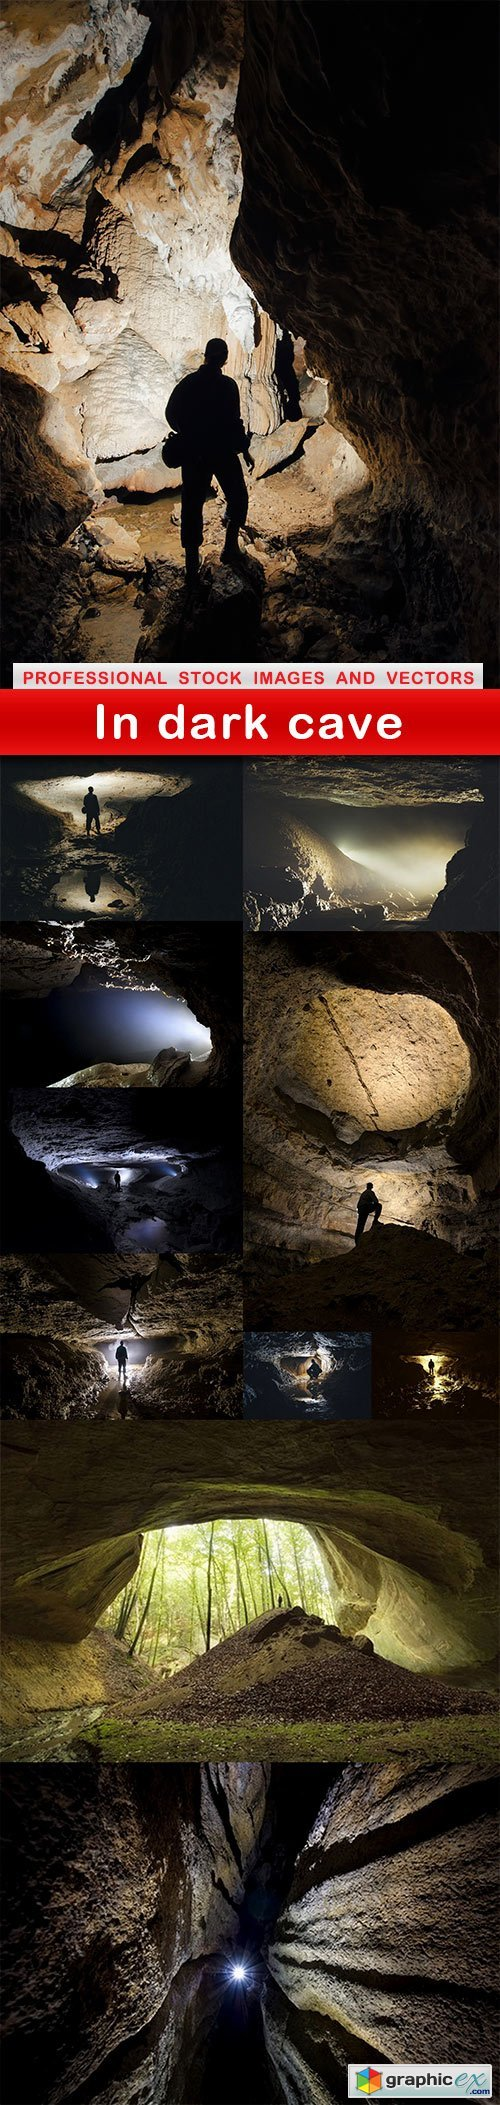 In dark cave - 11 UHQ JPEG